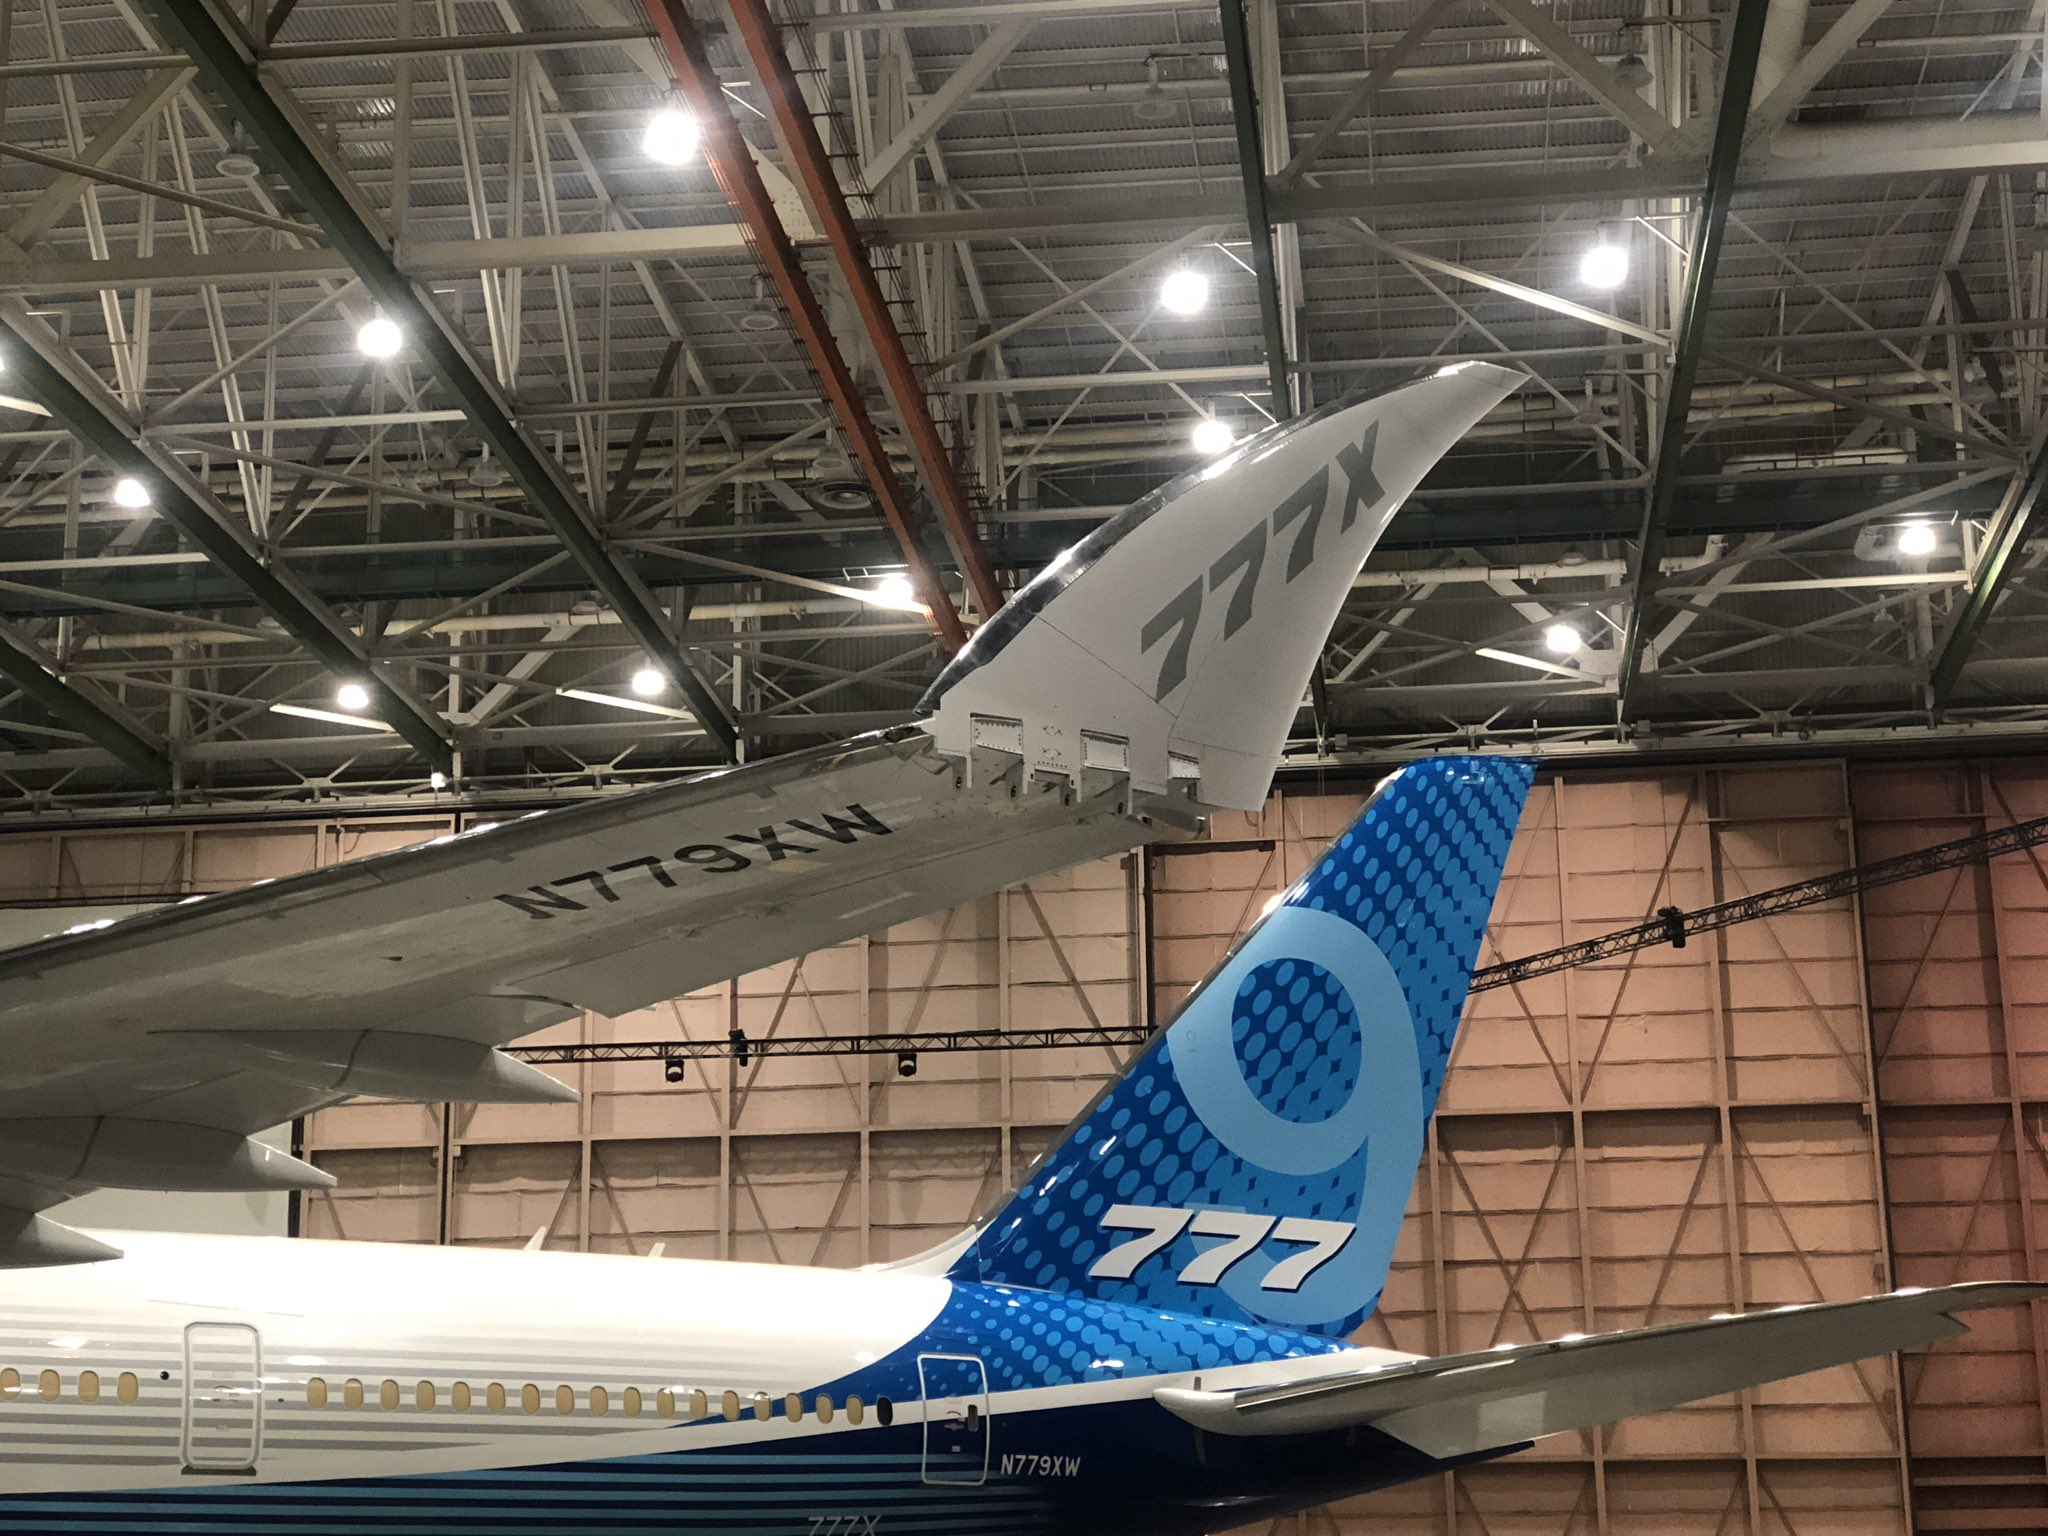 Boeing: twitter post about the 777X from @kym_rdschick